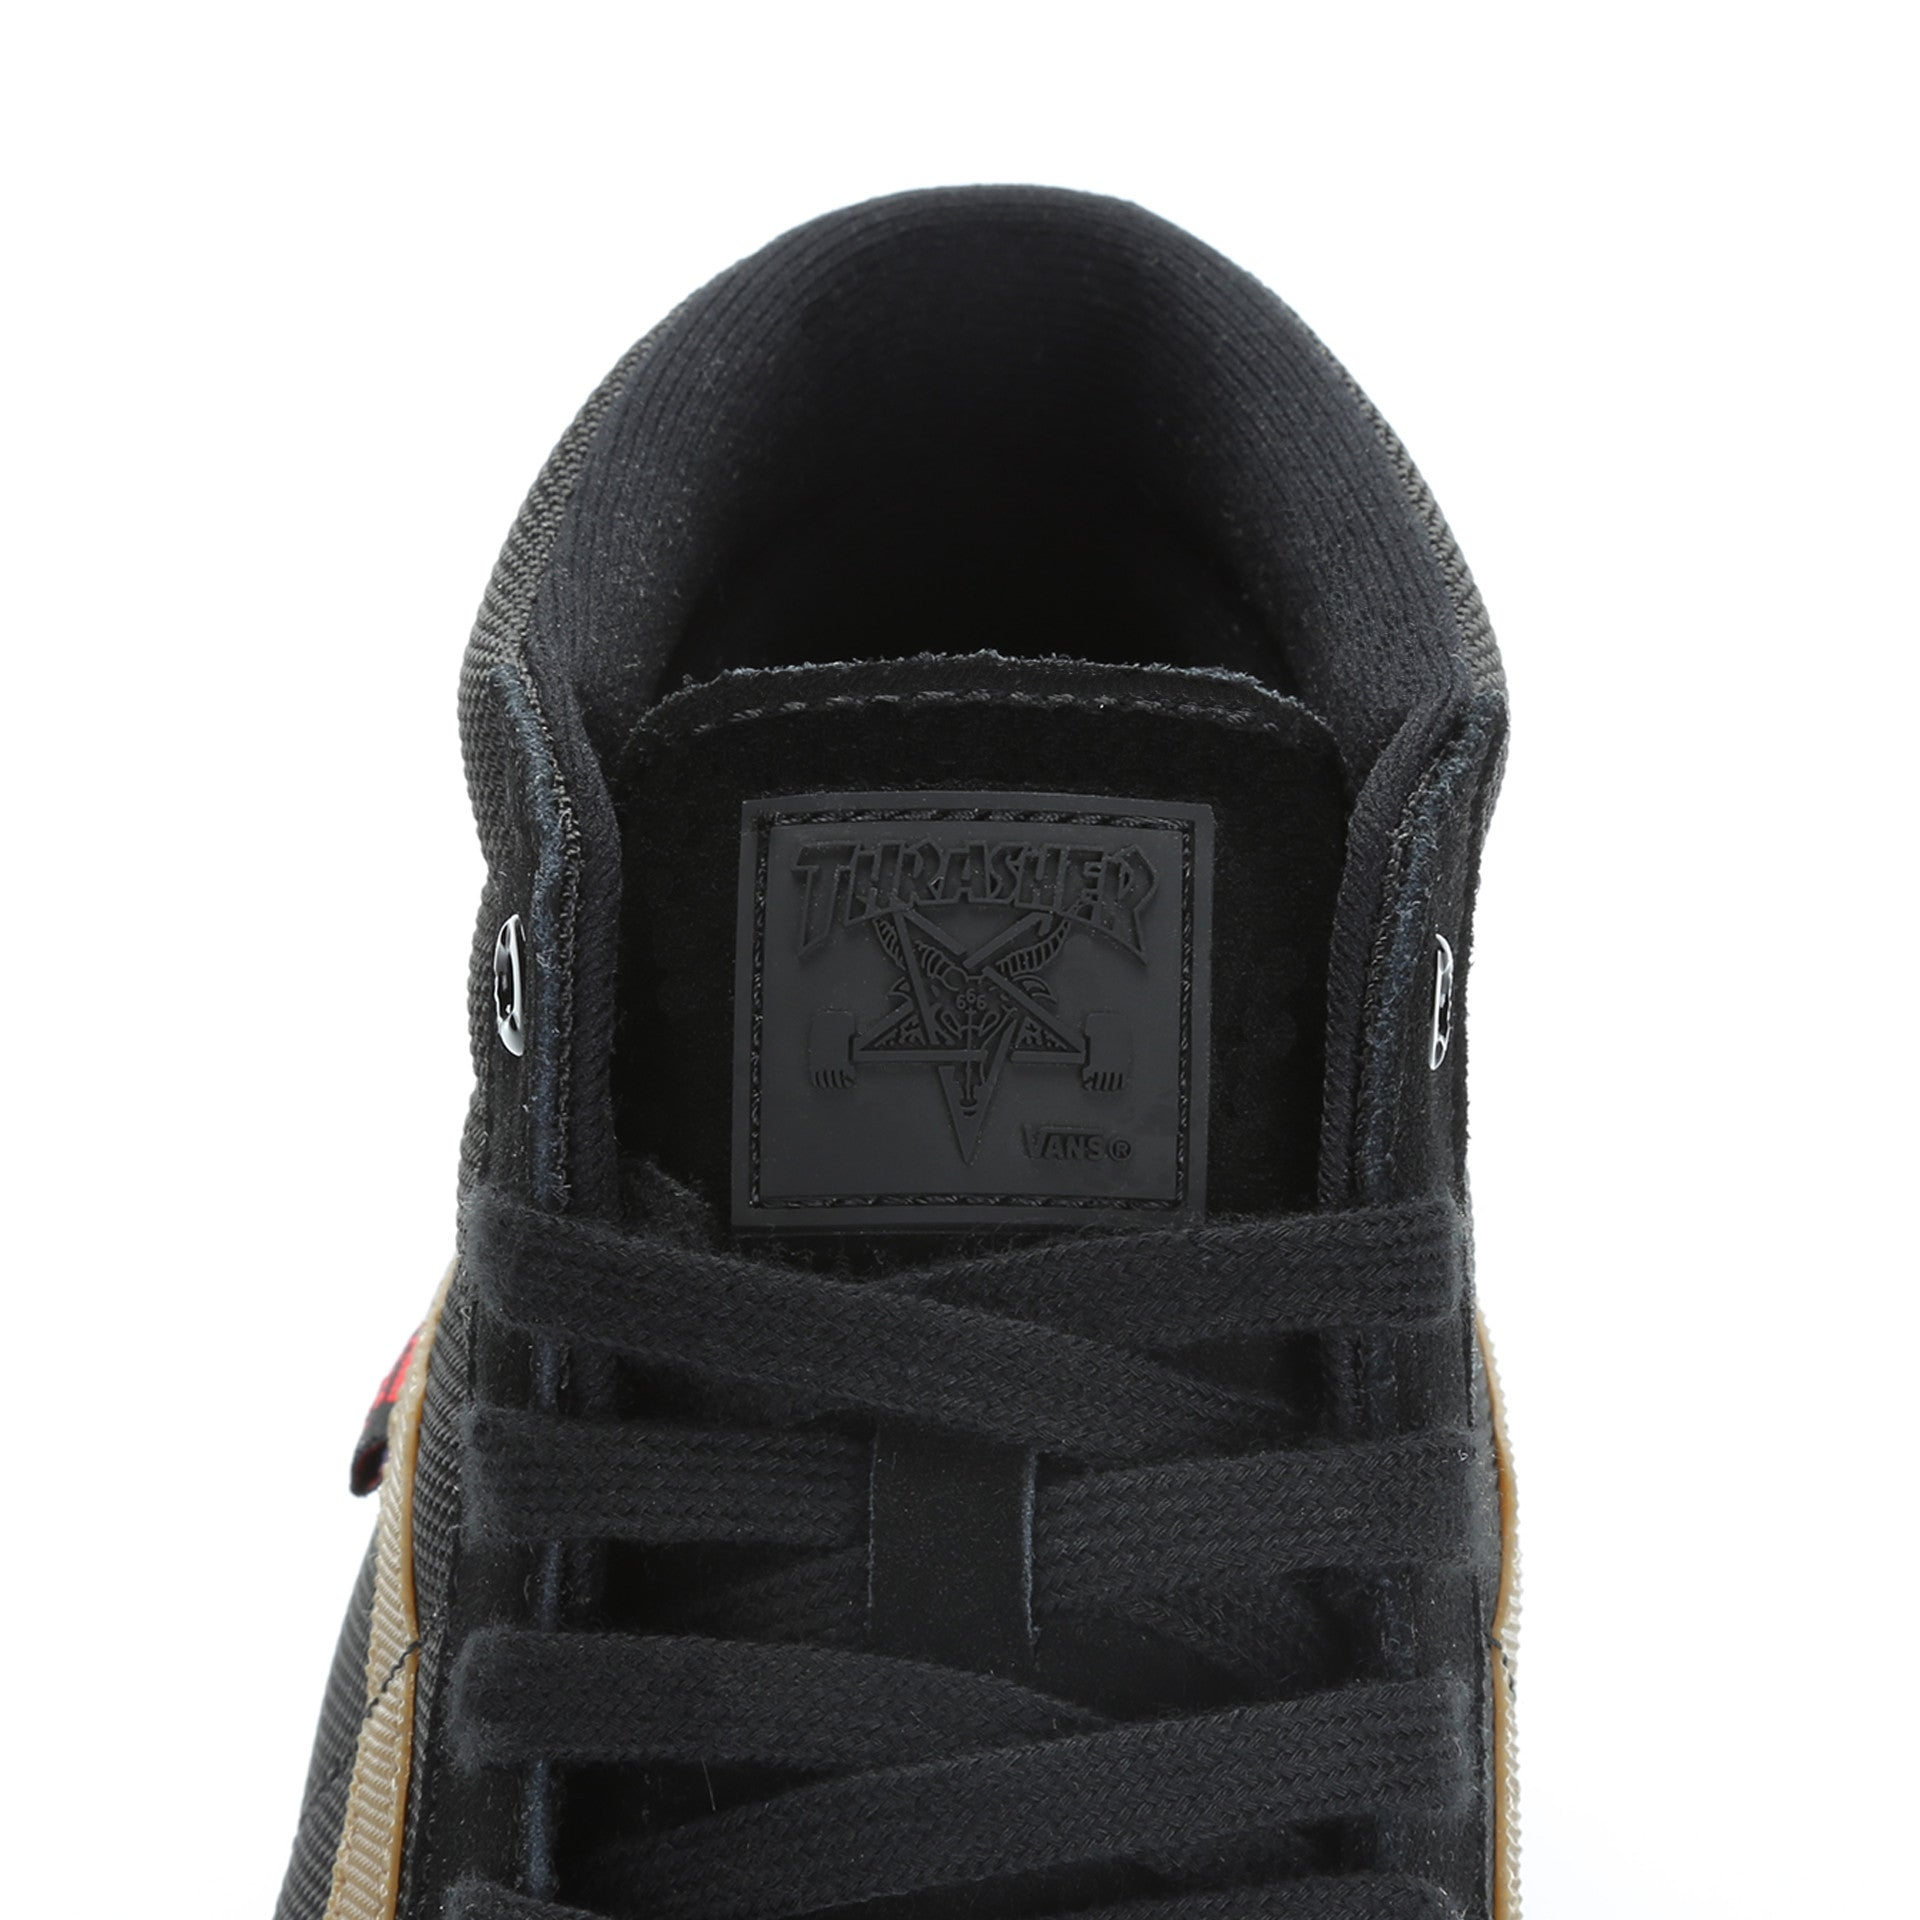 0bdd7b5bf5 Vans x Thrasher Sk8 Hi - Black Gum - New Star